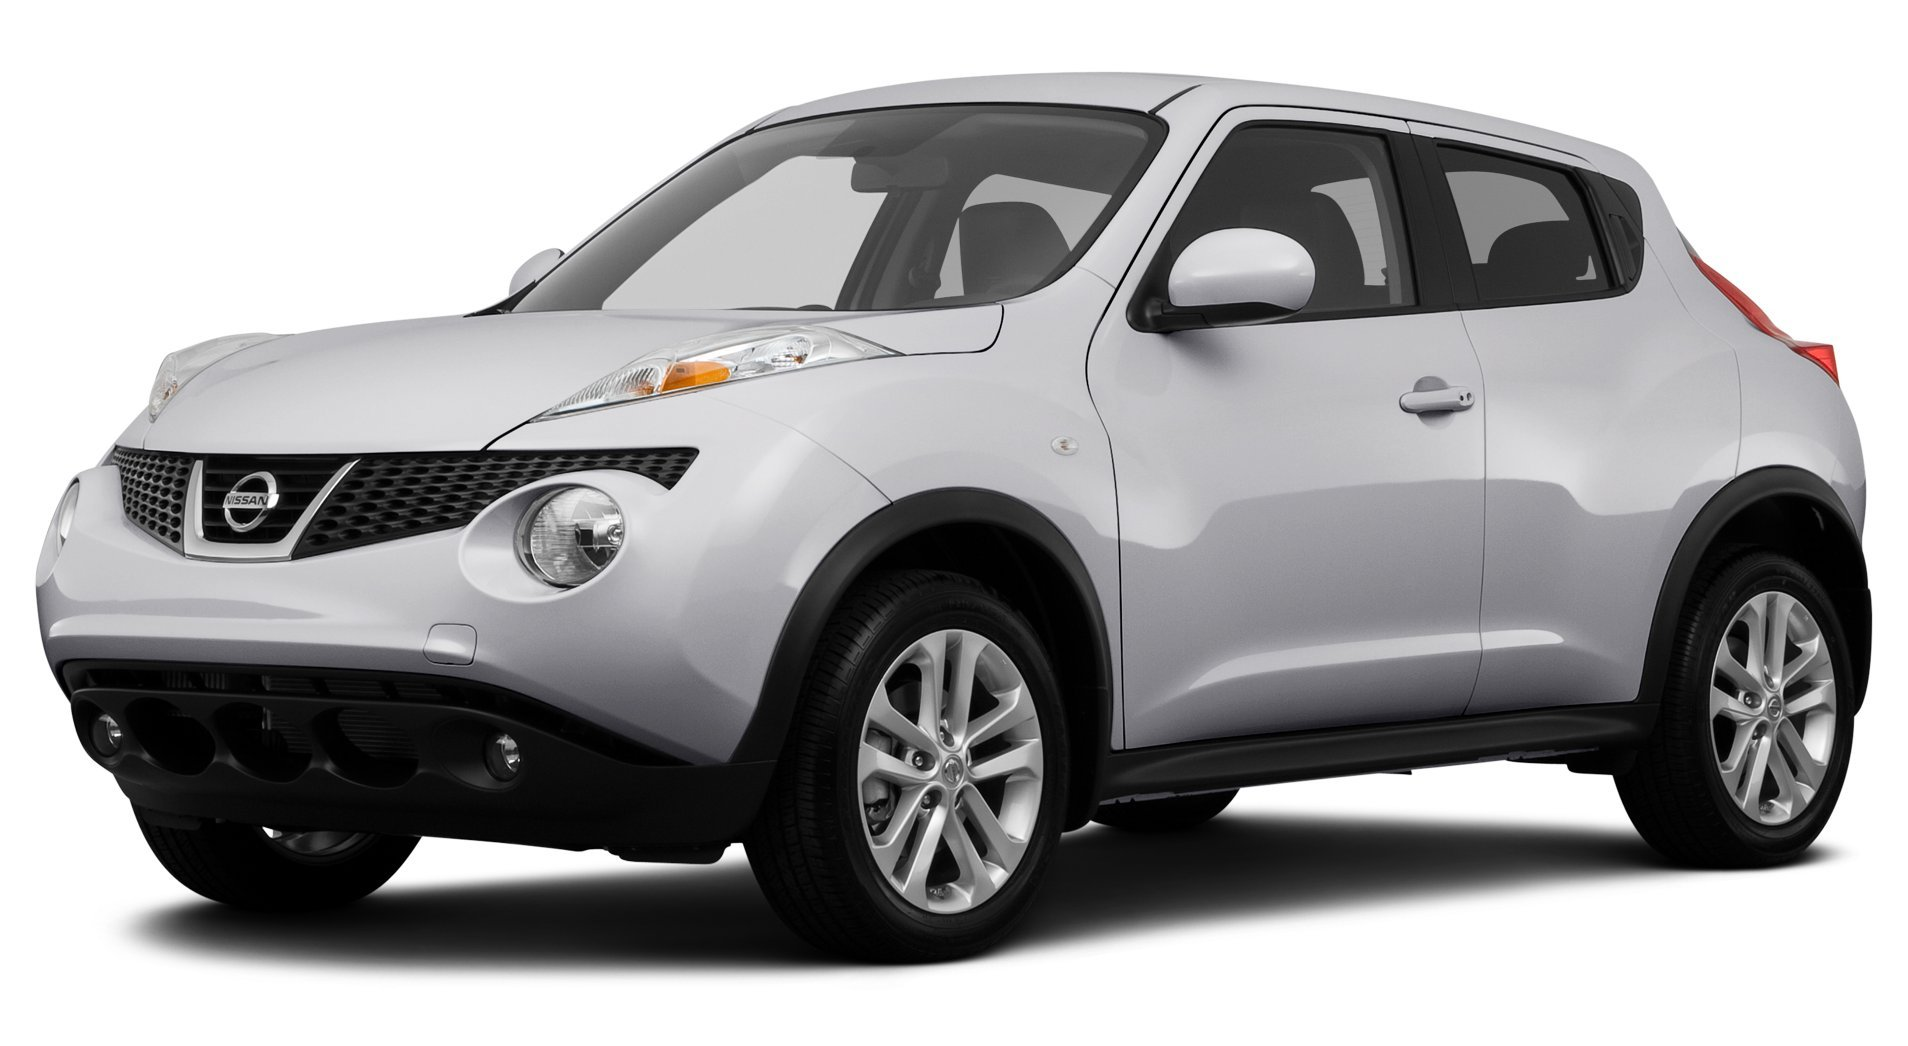 Amazon.com: 2014 Nissan Juke Reviews, Images, and Specs ...